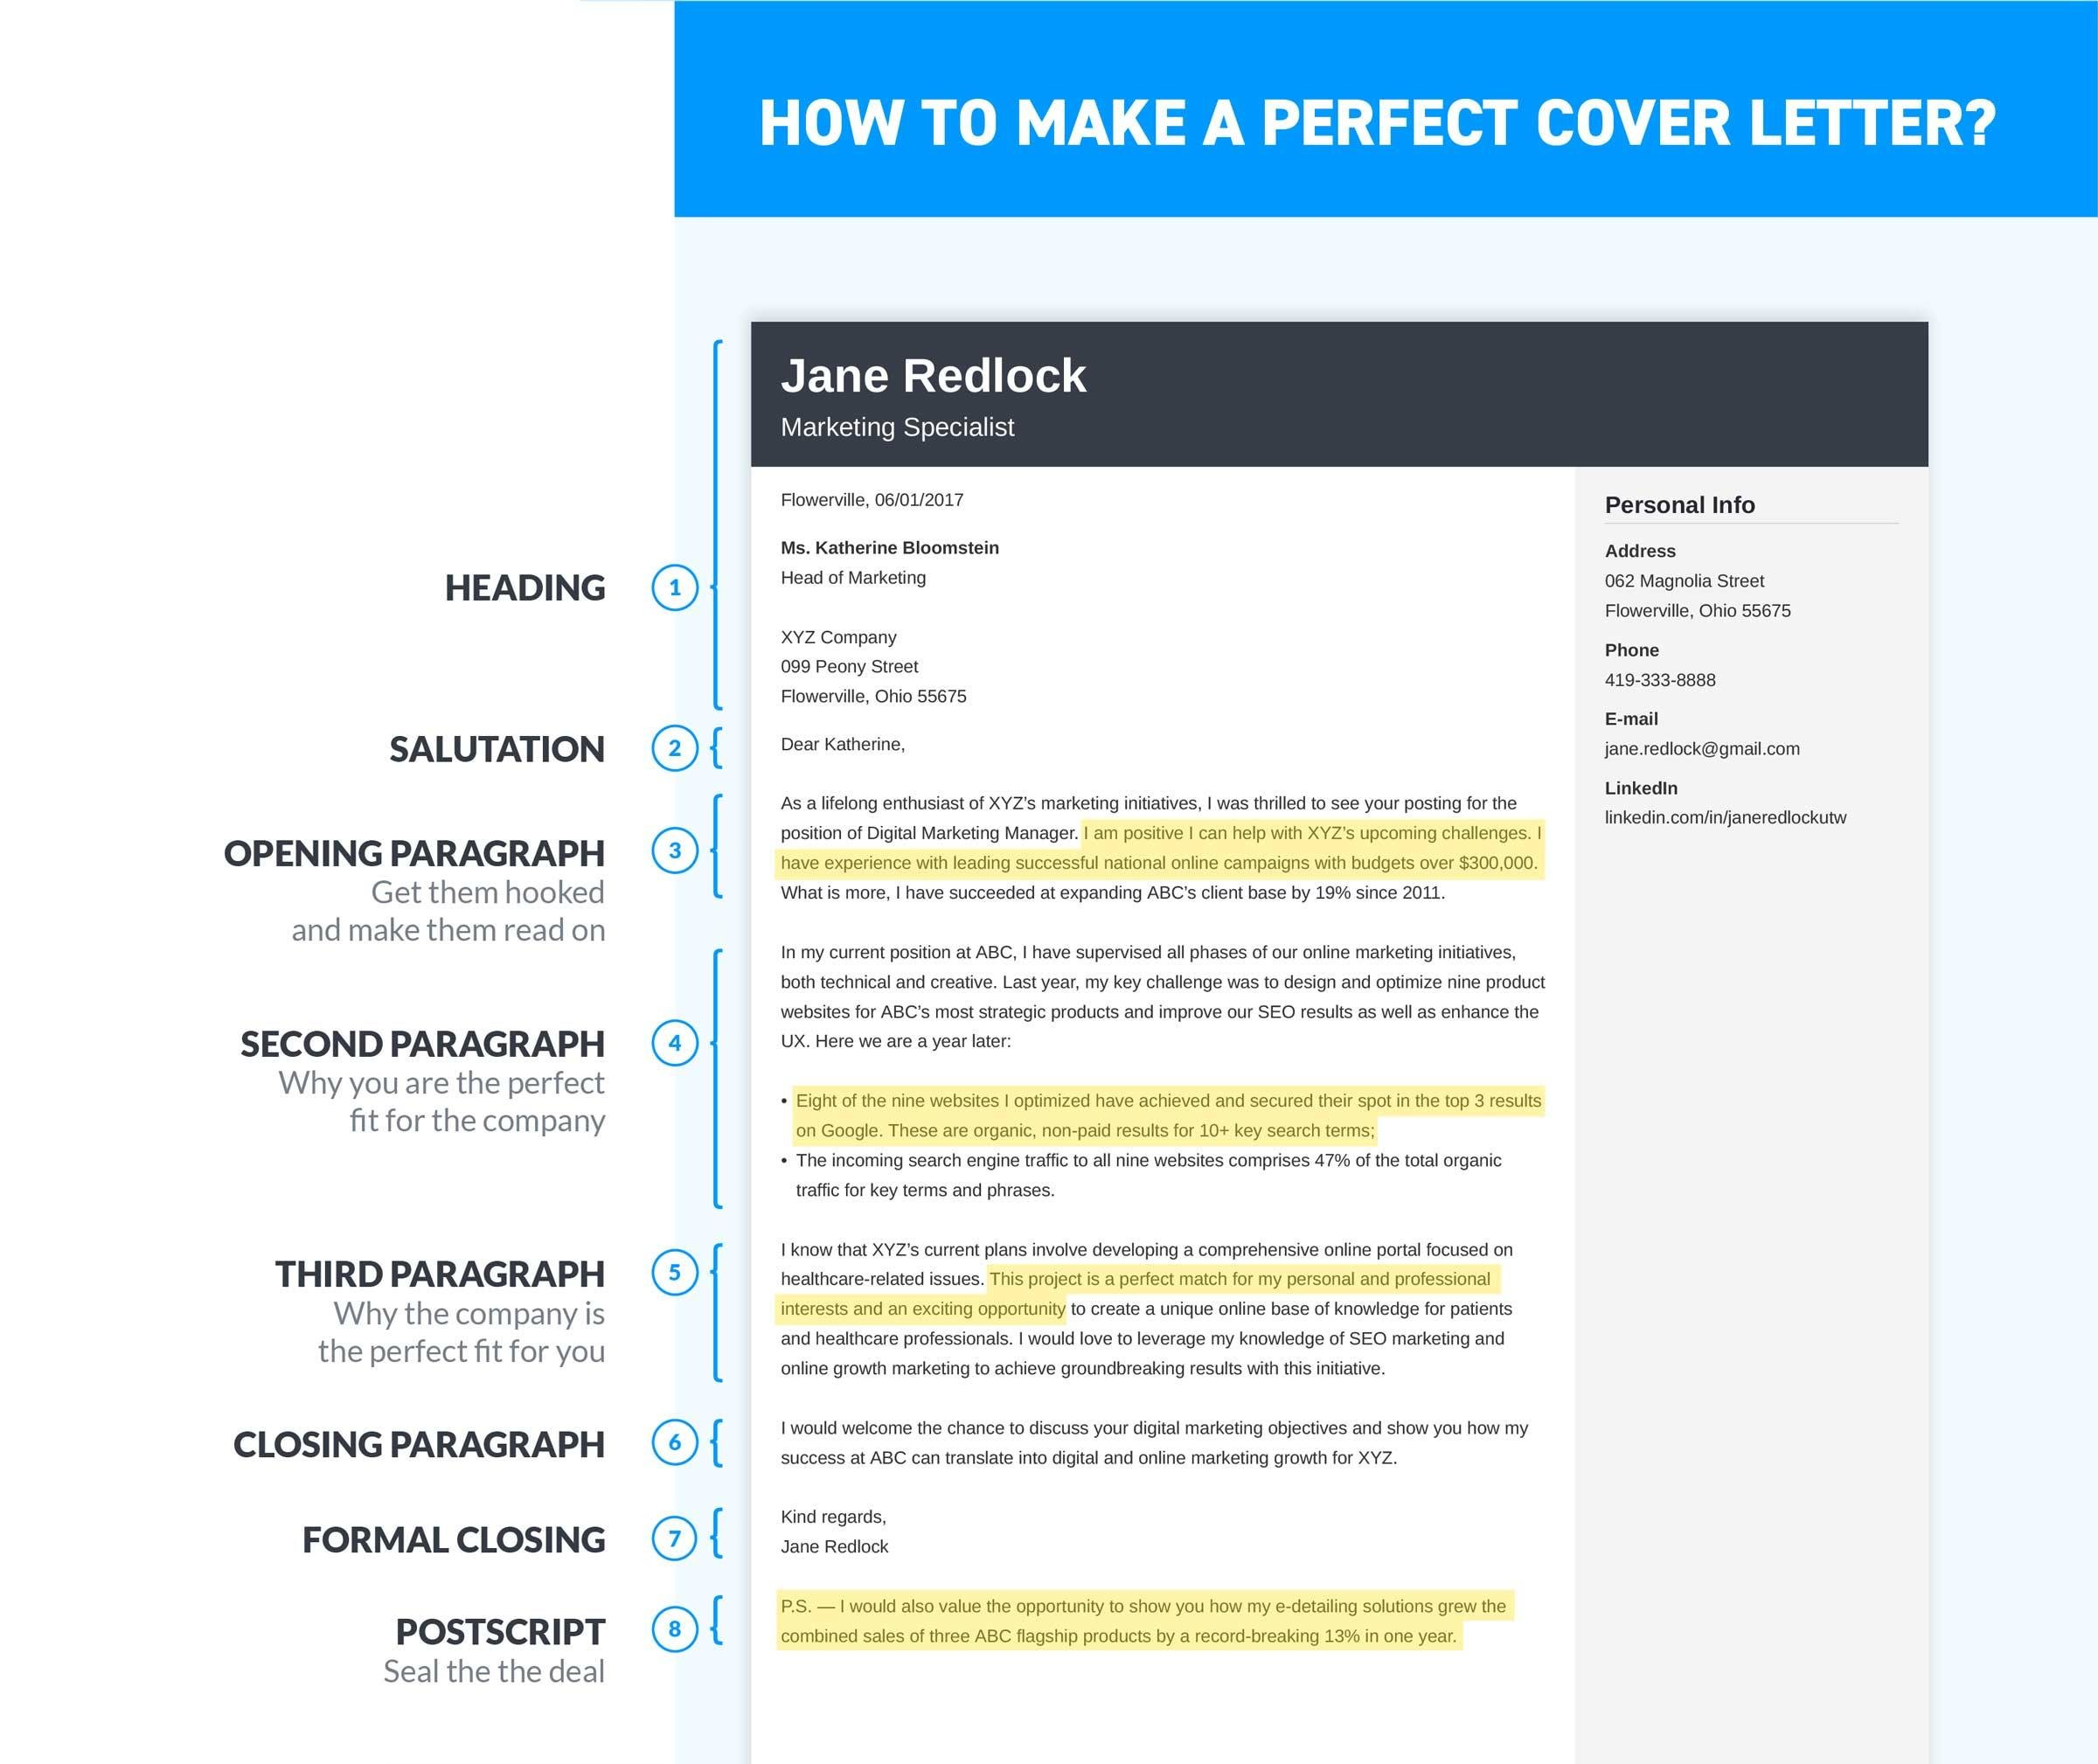 write a cover letter for job application